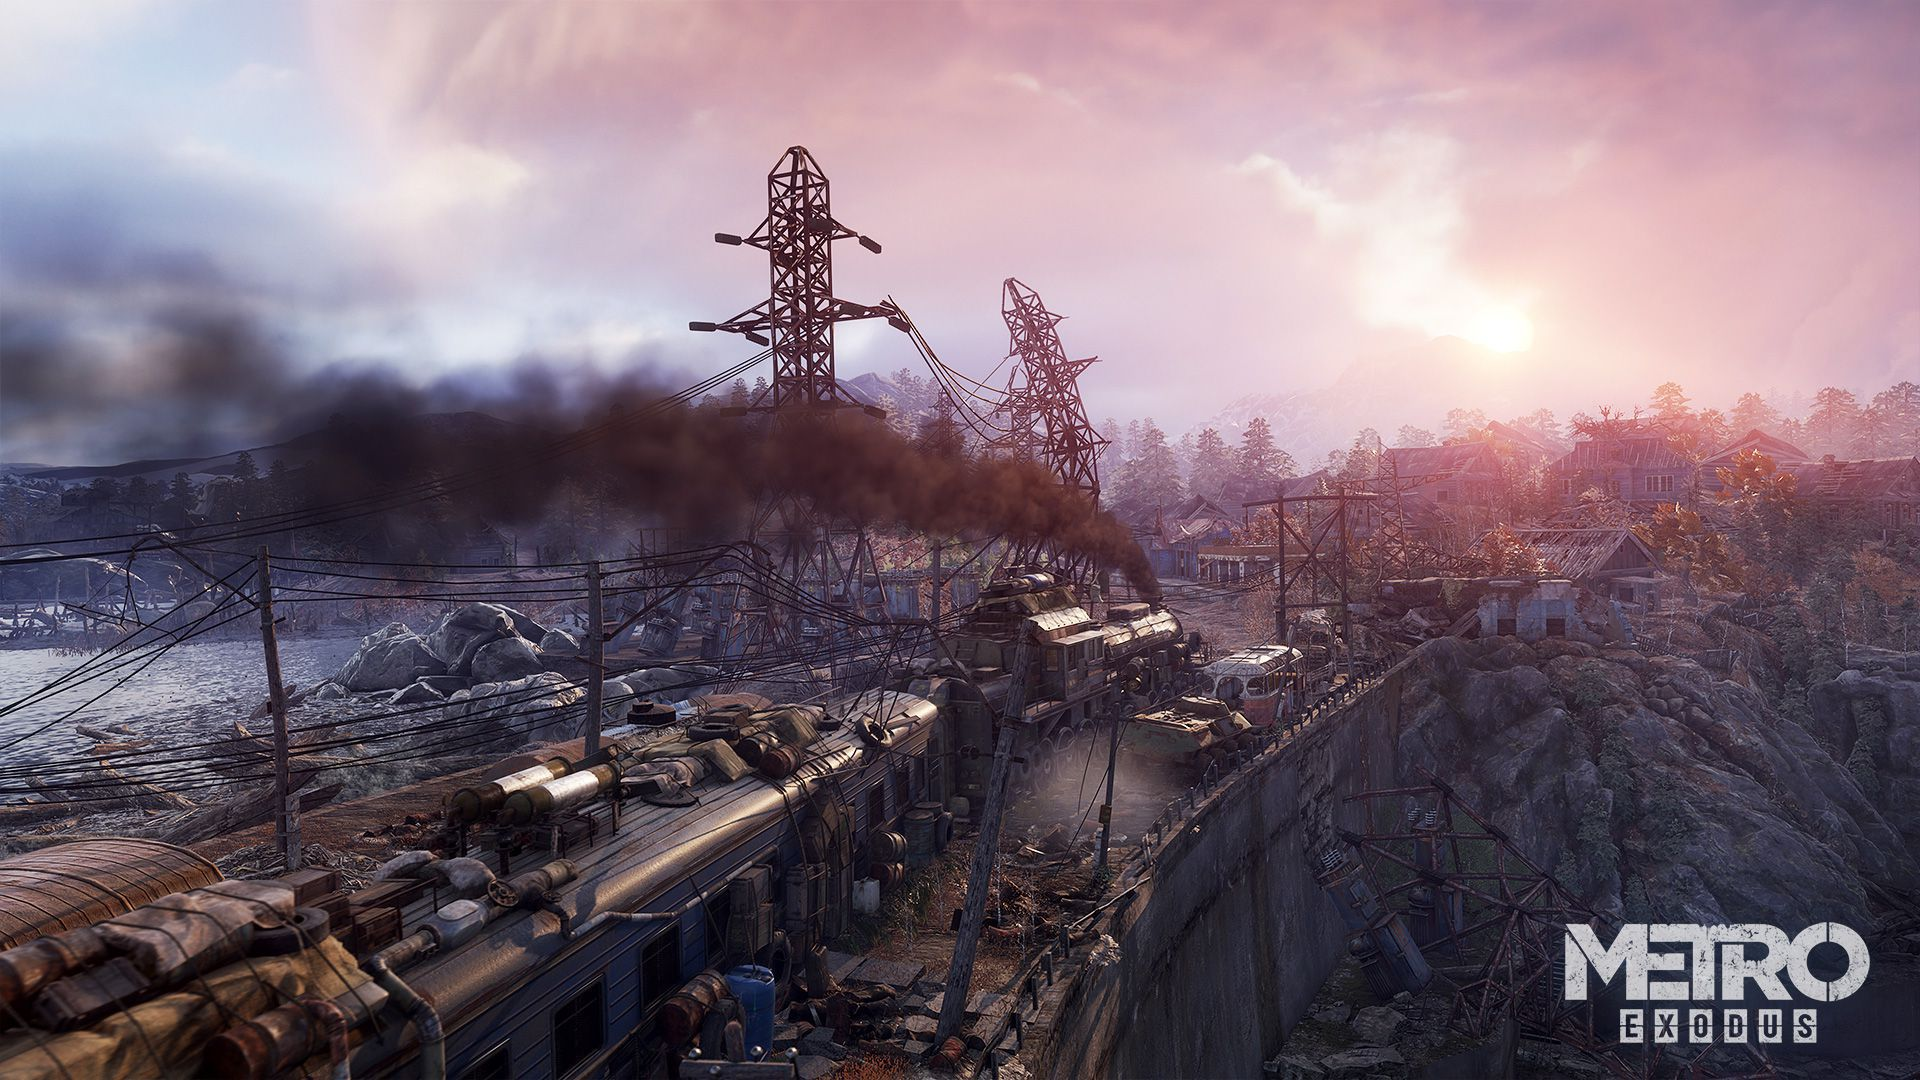 Metro Exodus 1080 Announce Screenshot 7 WATERMARK